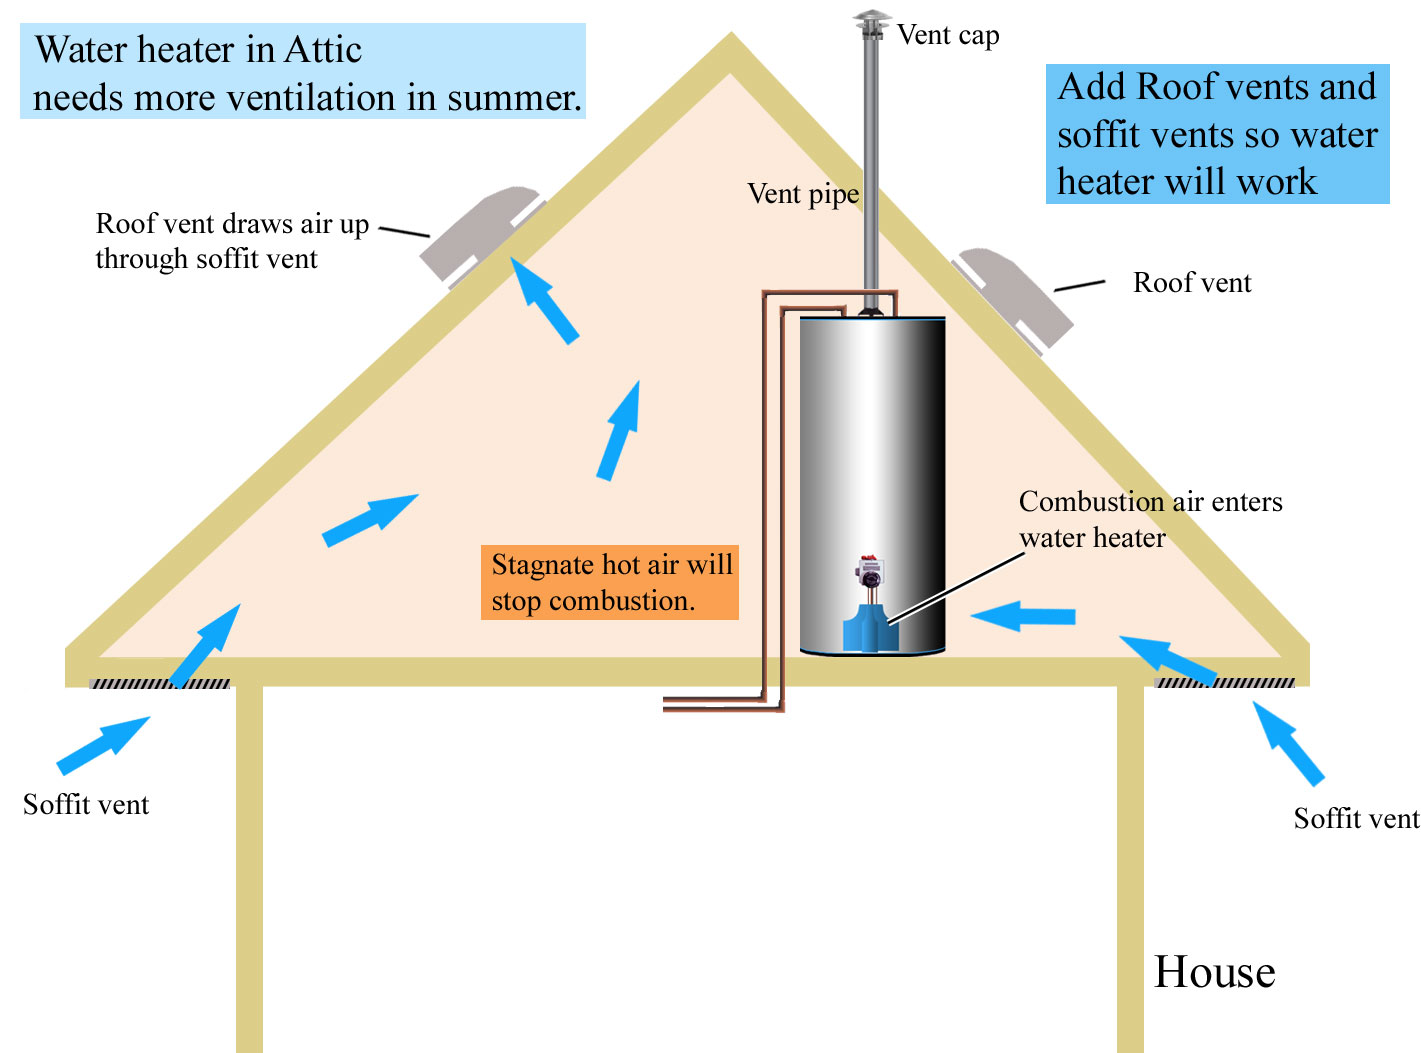 Hot water heater venting problems - Attic Ventilation Is Needed For Gas Water Heater Located In Attic Increase Ventilation To Water Heater